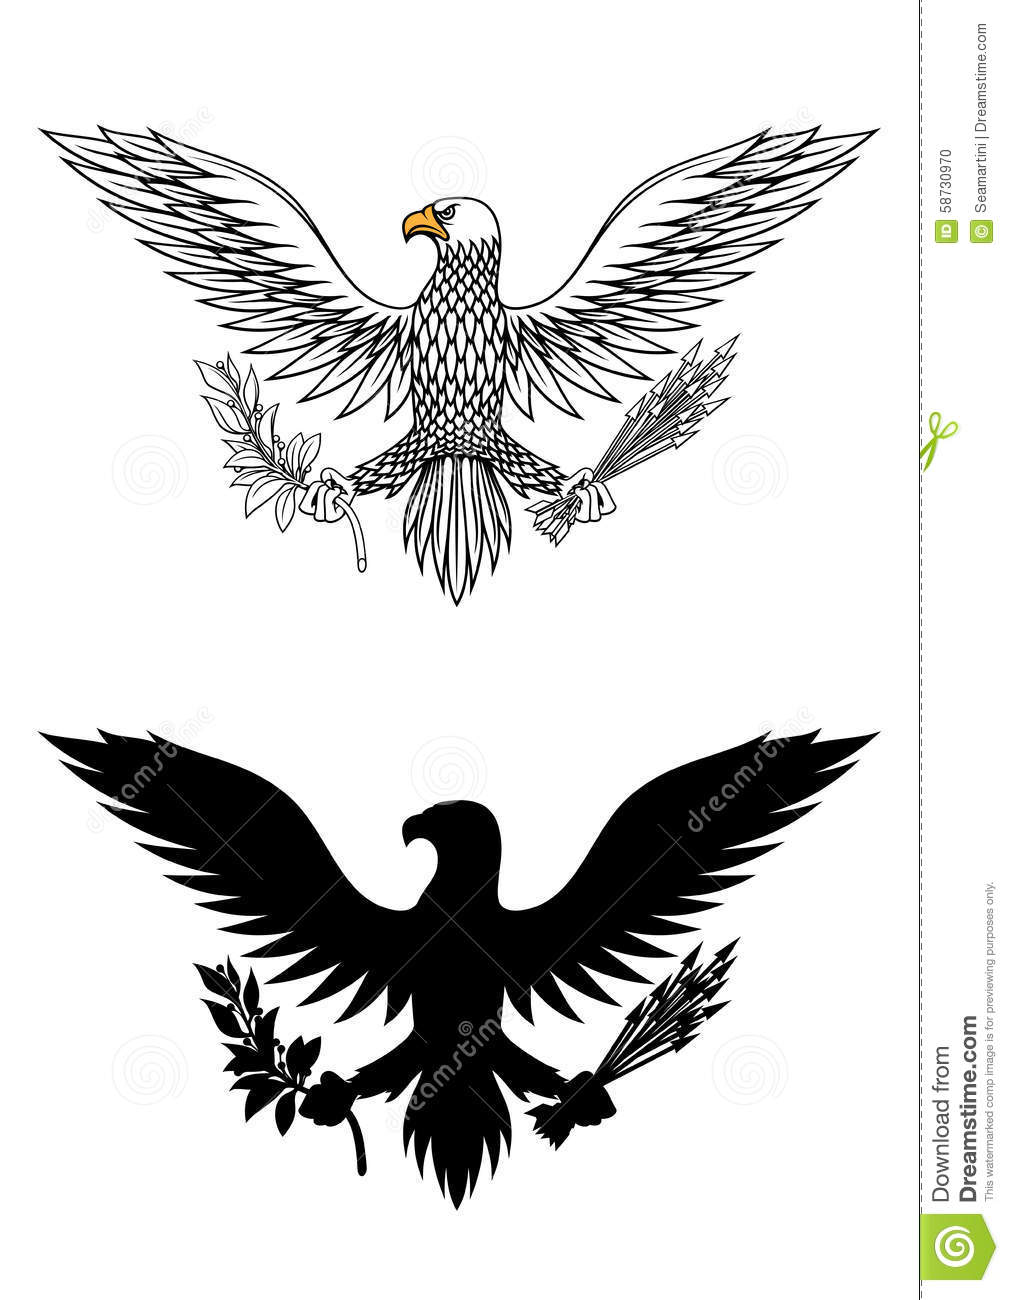 blue bird design with Stock Illustration American Eagle Holding Branch Arrows Olive Symbolic War Peace Image58730970 on Flowers furthermore Medical moreover Bird Black And White Cliparts also Black And White Umbrella Lineart 550 also Swirl.